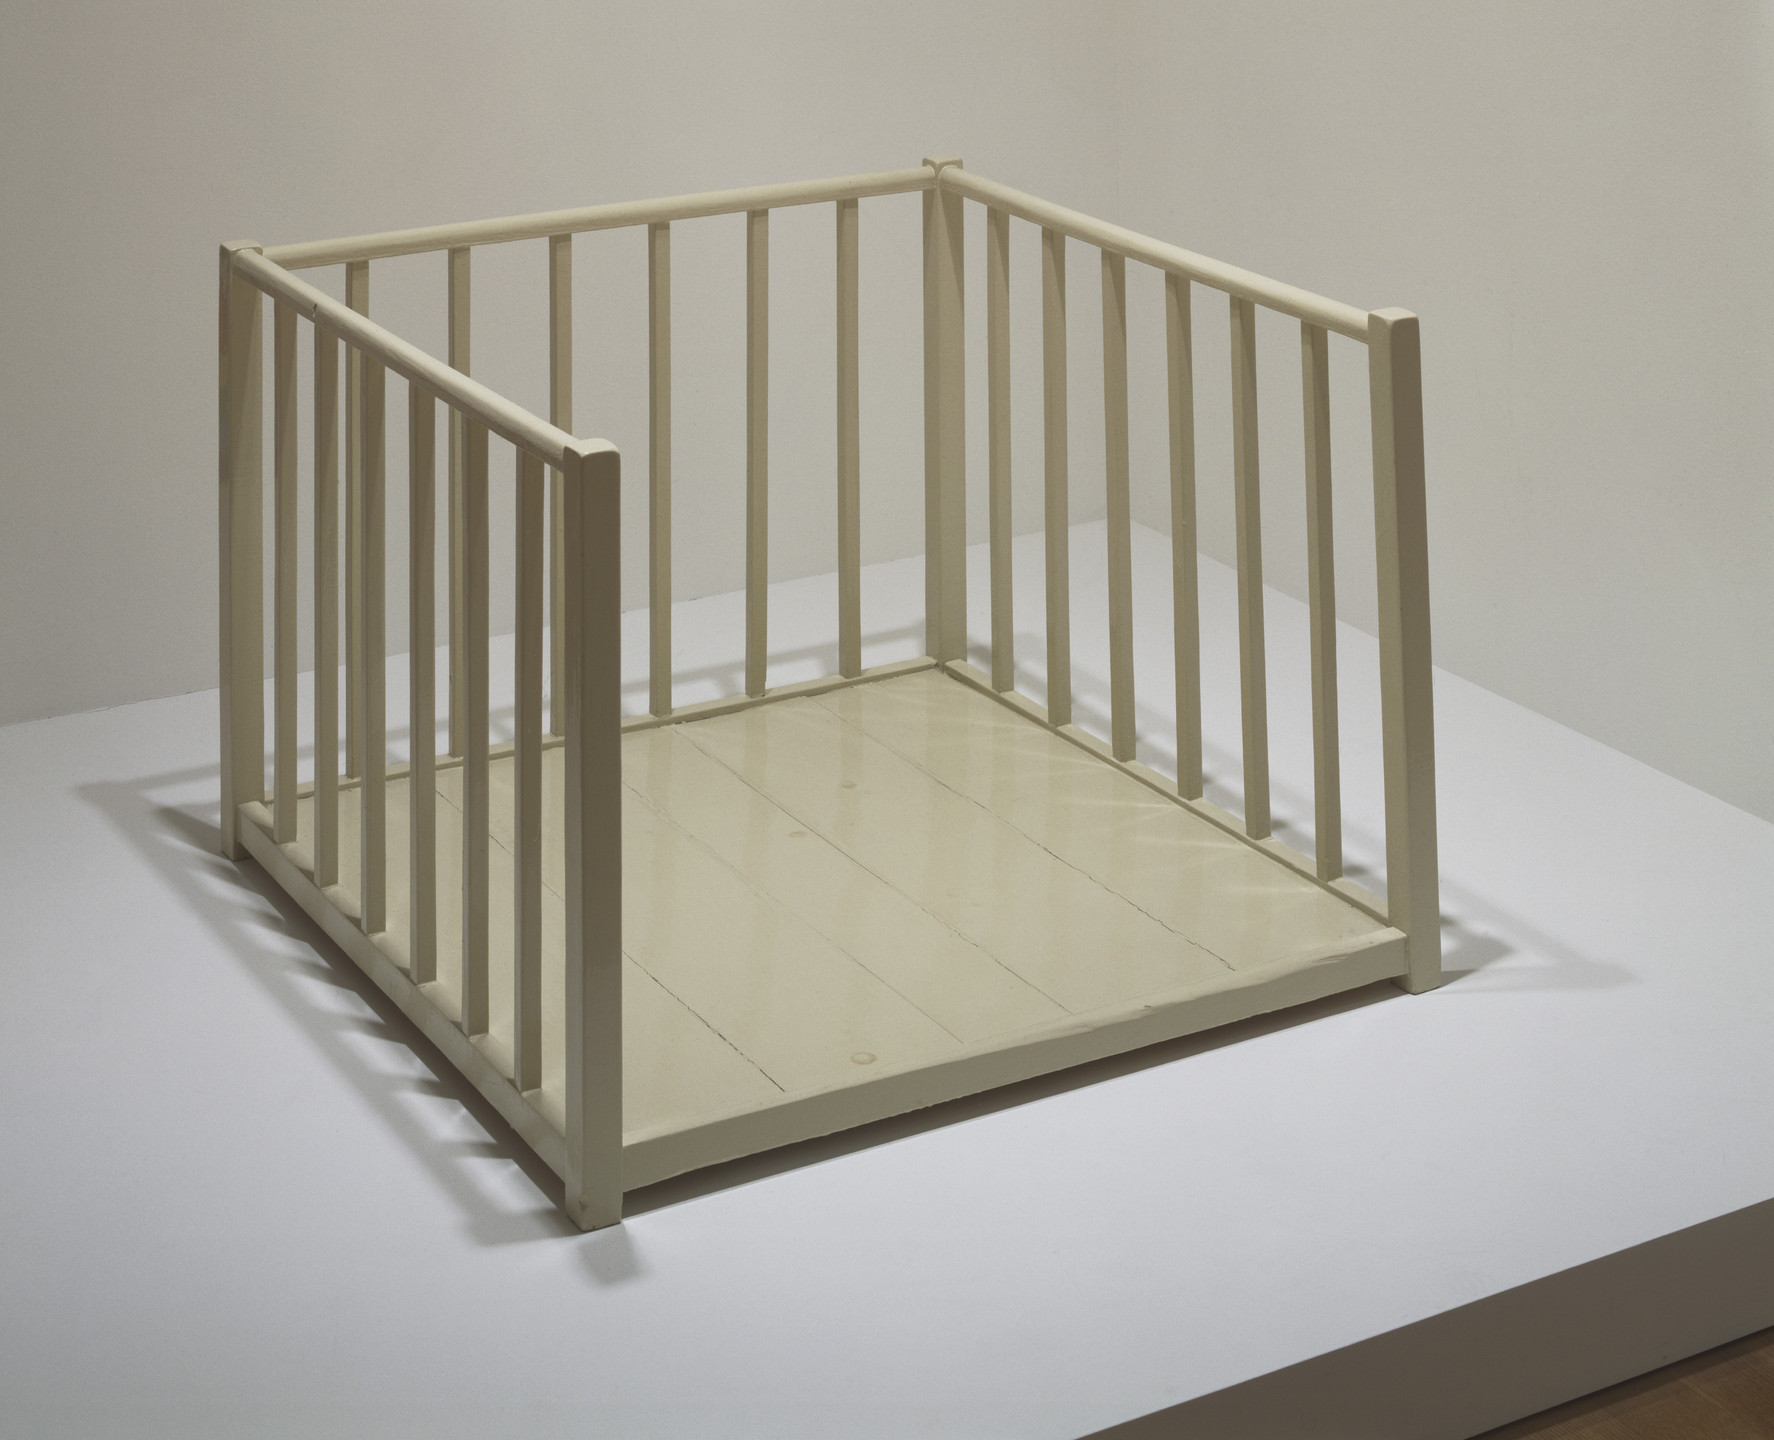 Robert Gober. Open Playpen. 1987